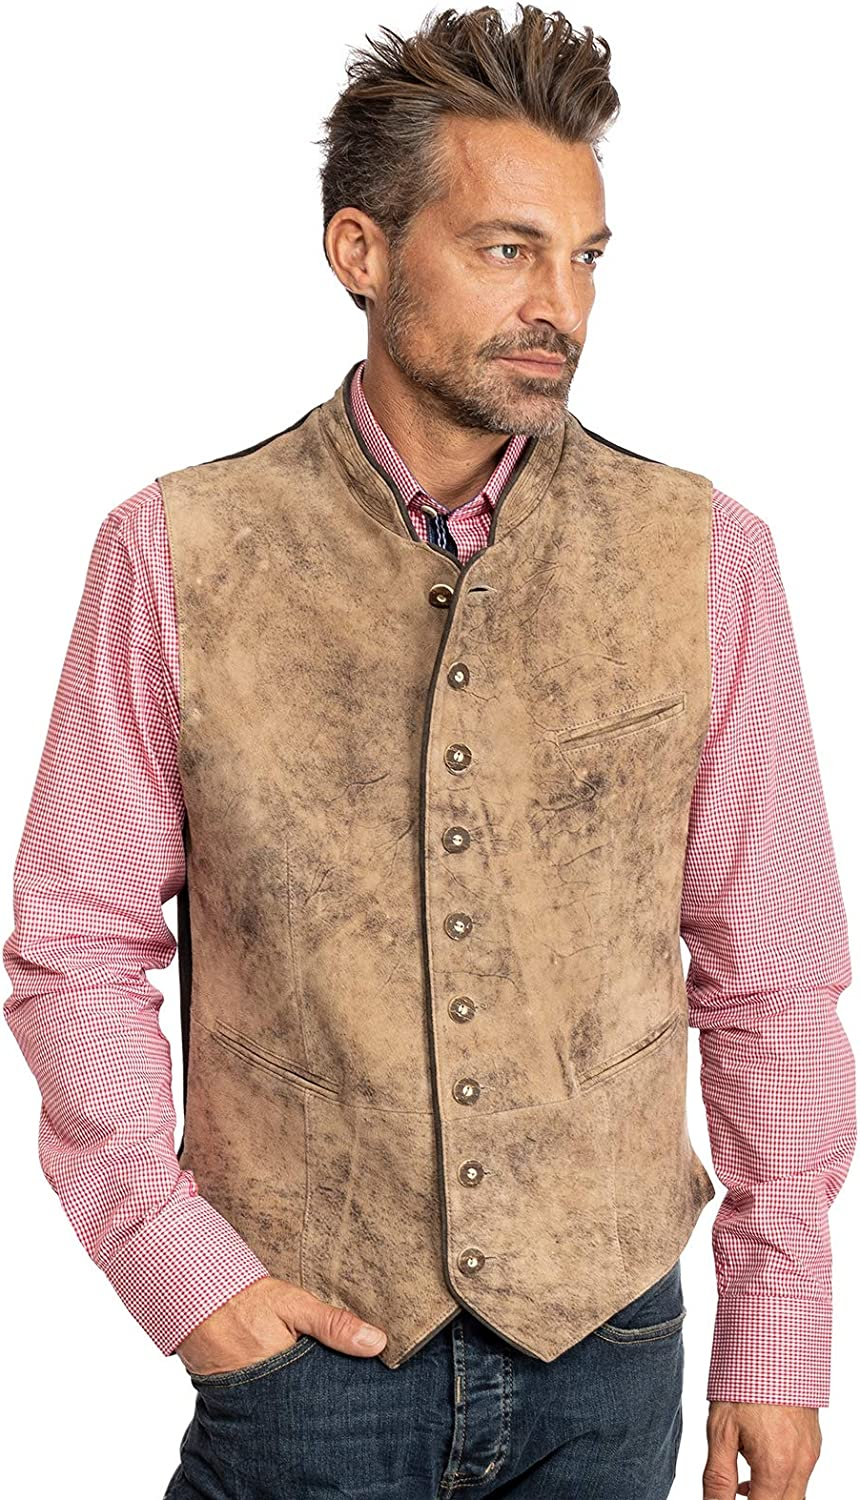 Maddox Traditional Leather Vest HACKENSEE - Metis Stone